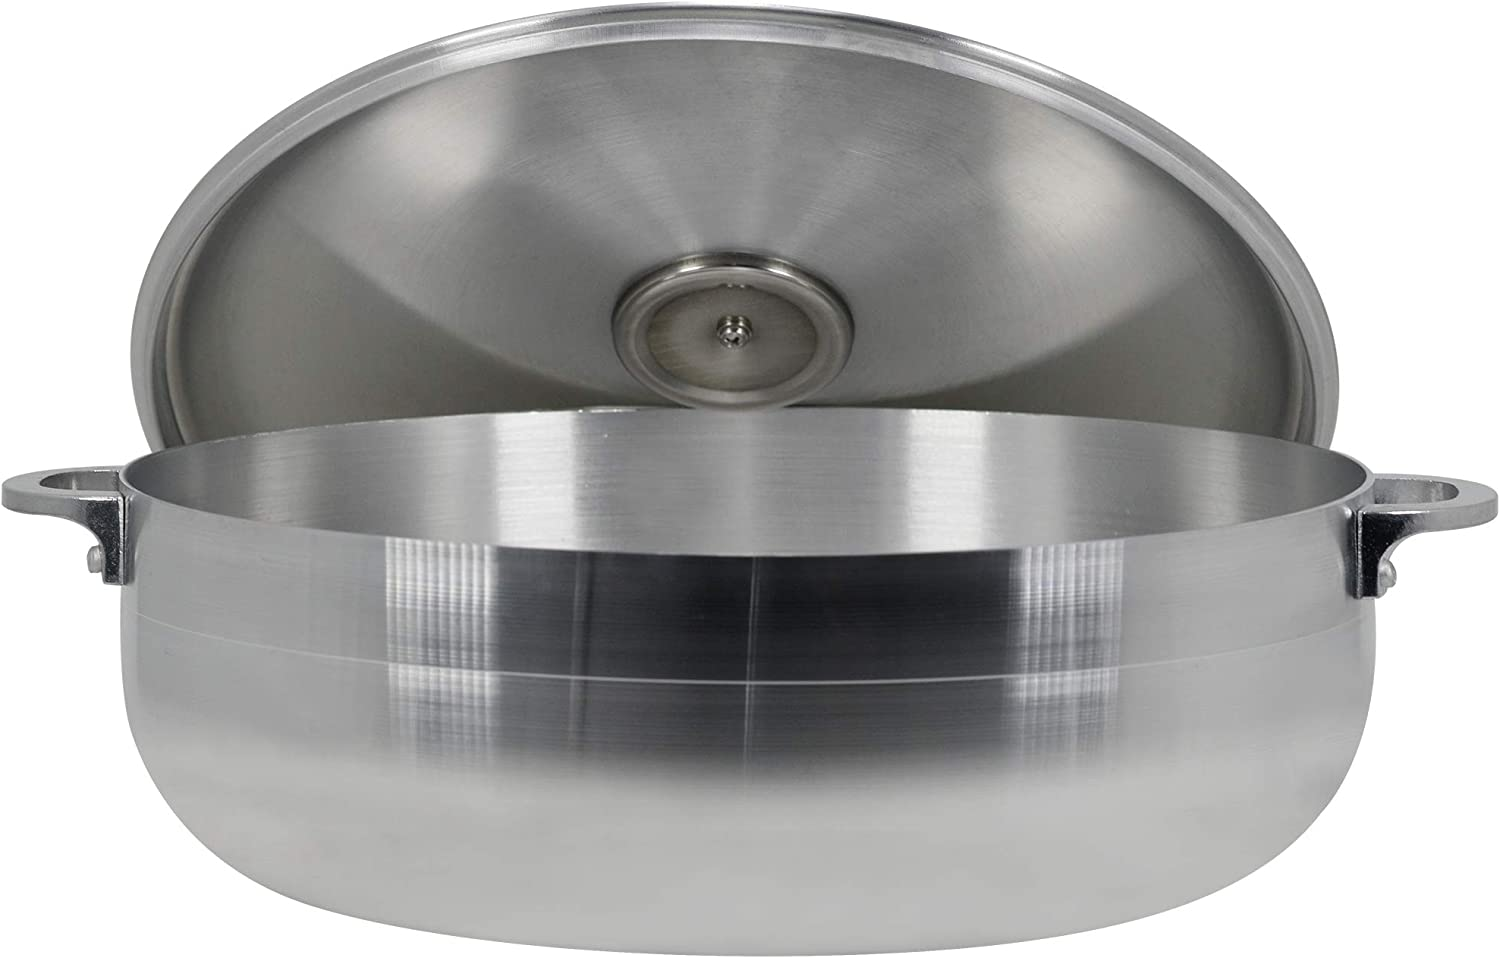 Polished Cast Aluminum Caldero with Lid by Elevate Home Products Traditional Columbian Stainless Steel Stock Pot Dishwasher Safe Silver Dutch Ovens for Cooking and Serving (9.50 Quarts)